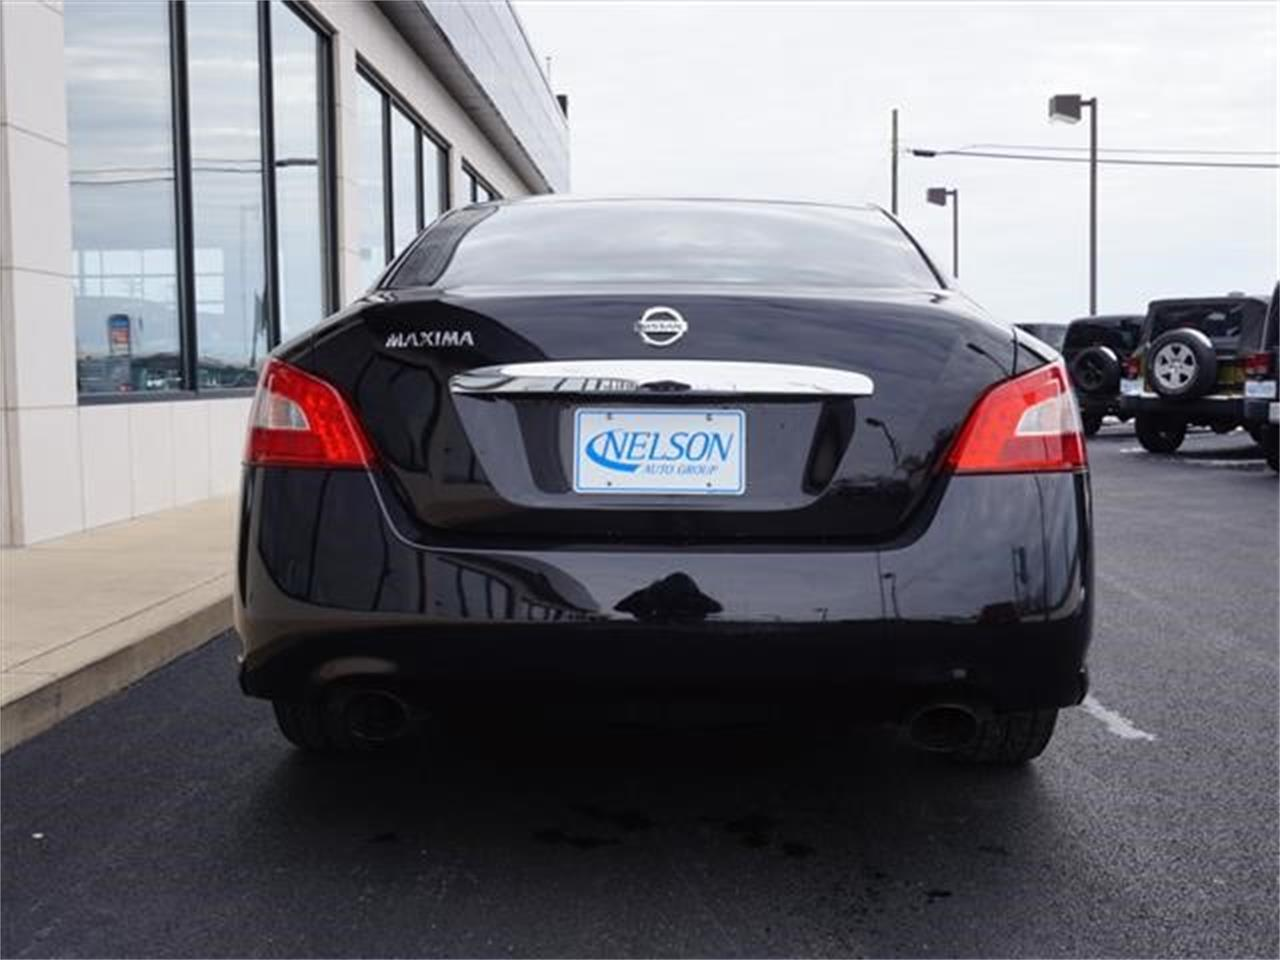 Large Picture of '10 Nissan Maxima located in Ohio Offered by Nelson Automotive, Ltd. - KHAD